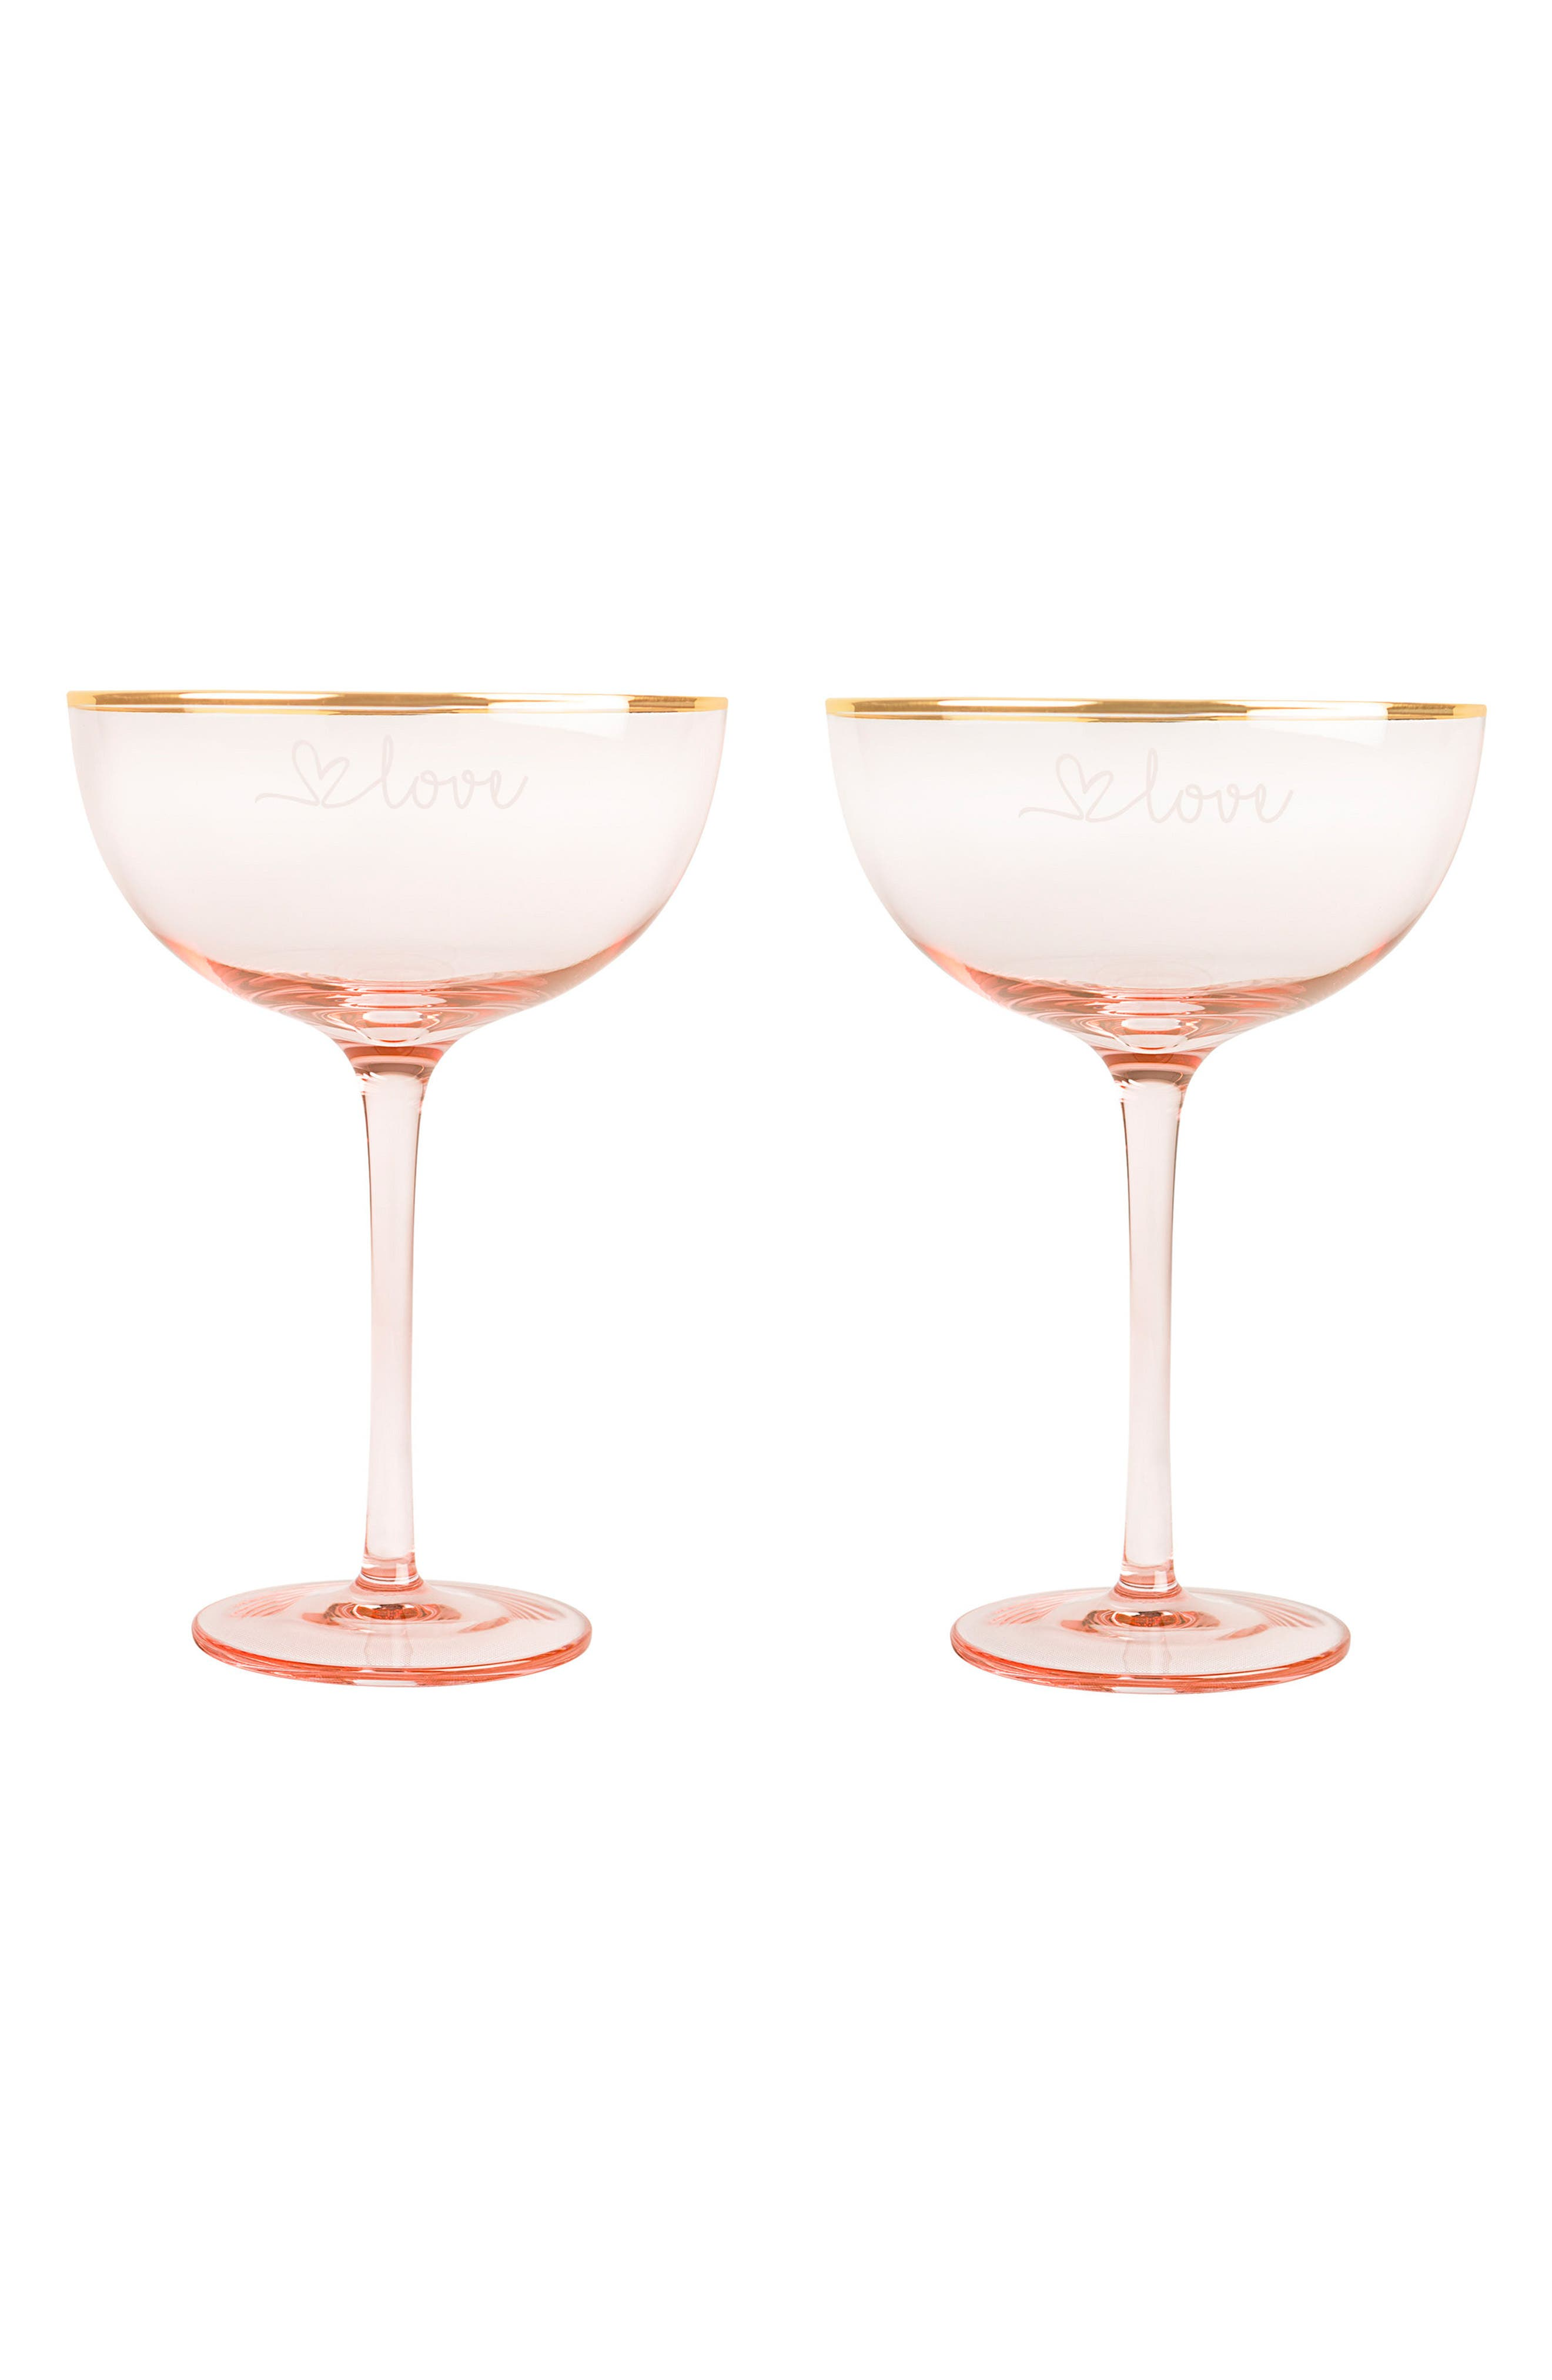 Love Set of 2 Champagne Coupes,                             Main thumbnail 1, color,                             Blush